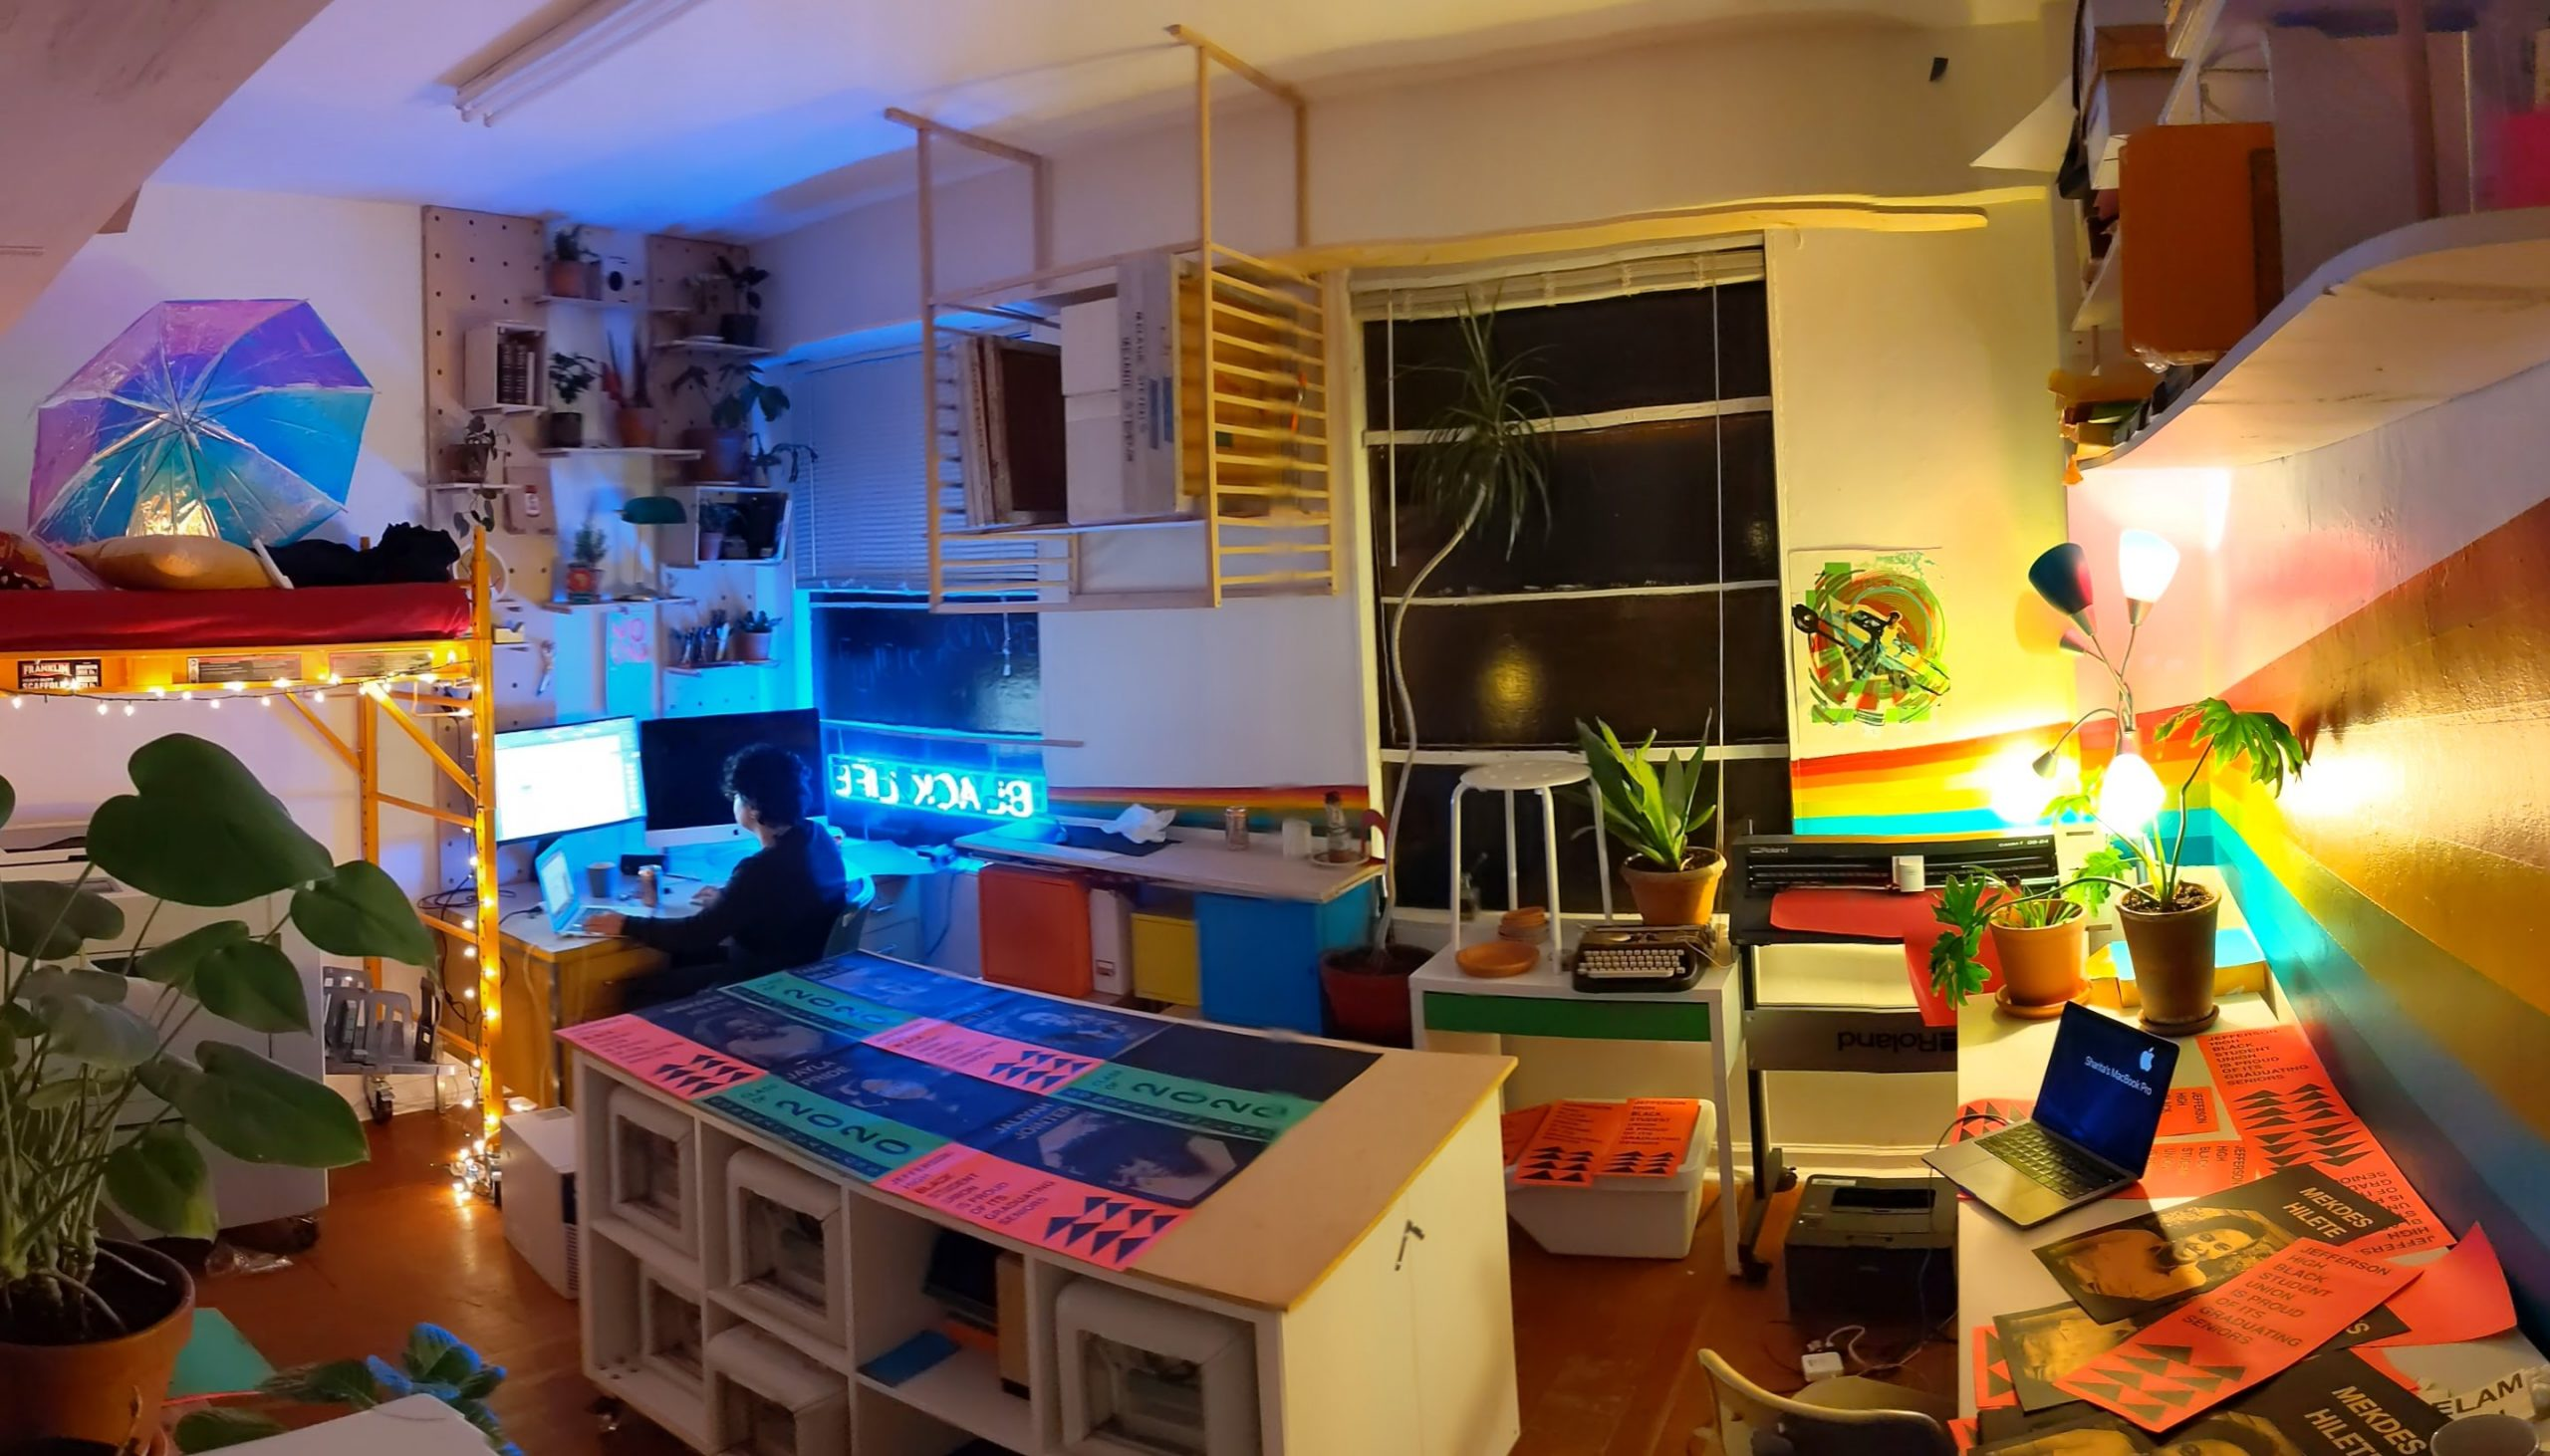 studio view with screenprinted posters